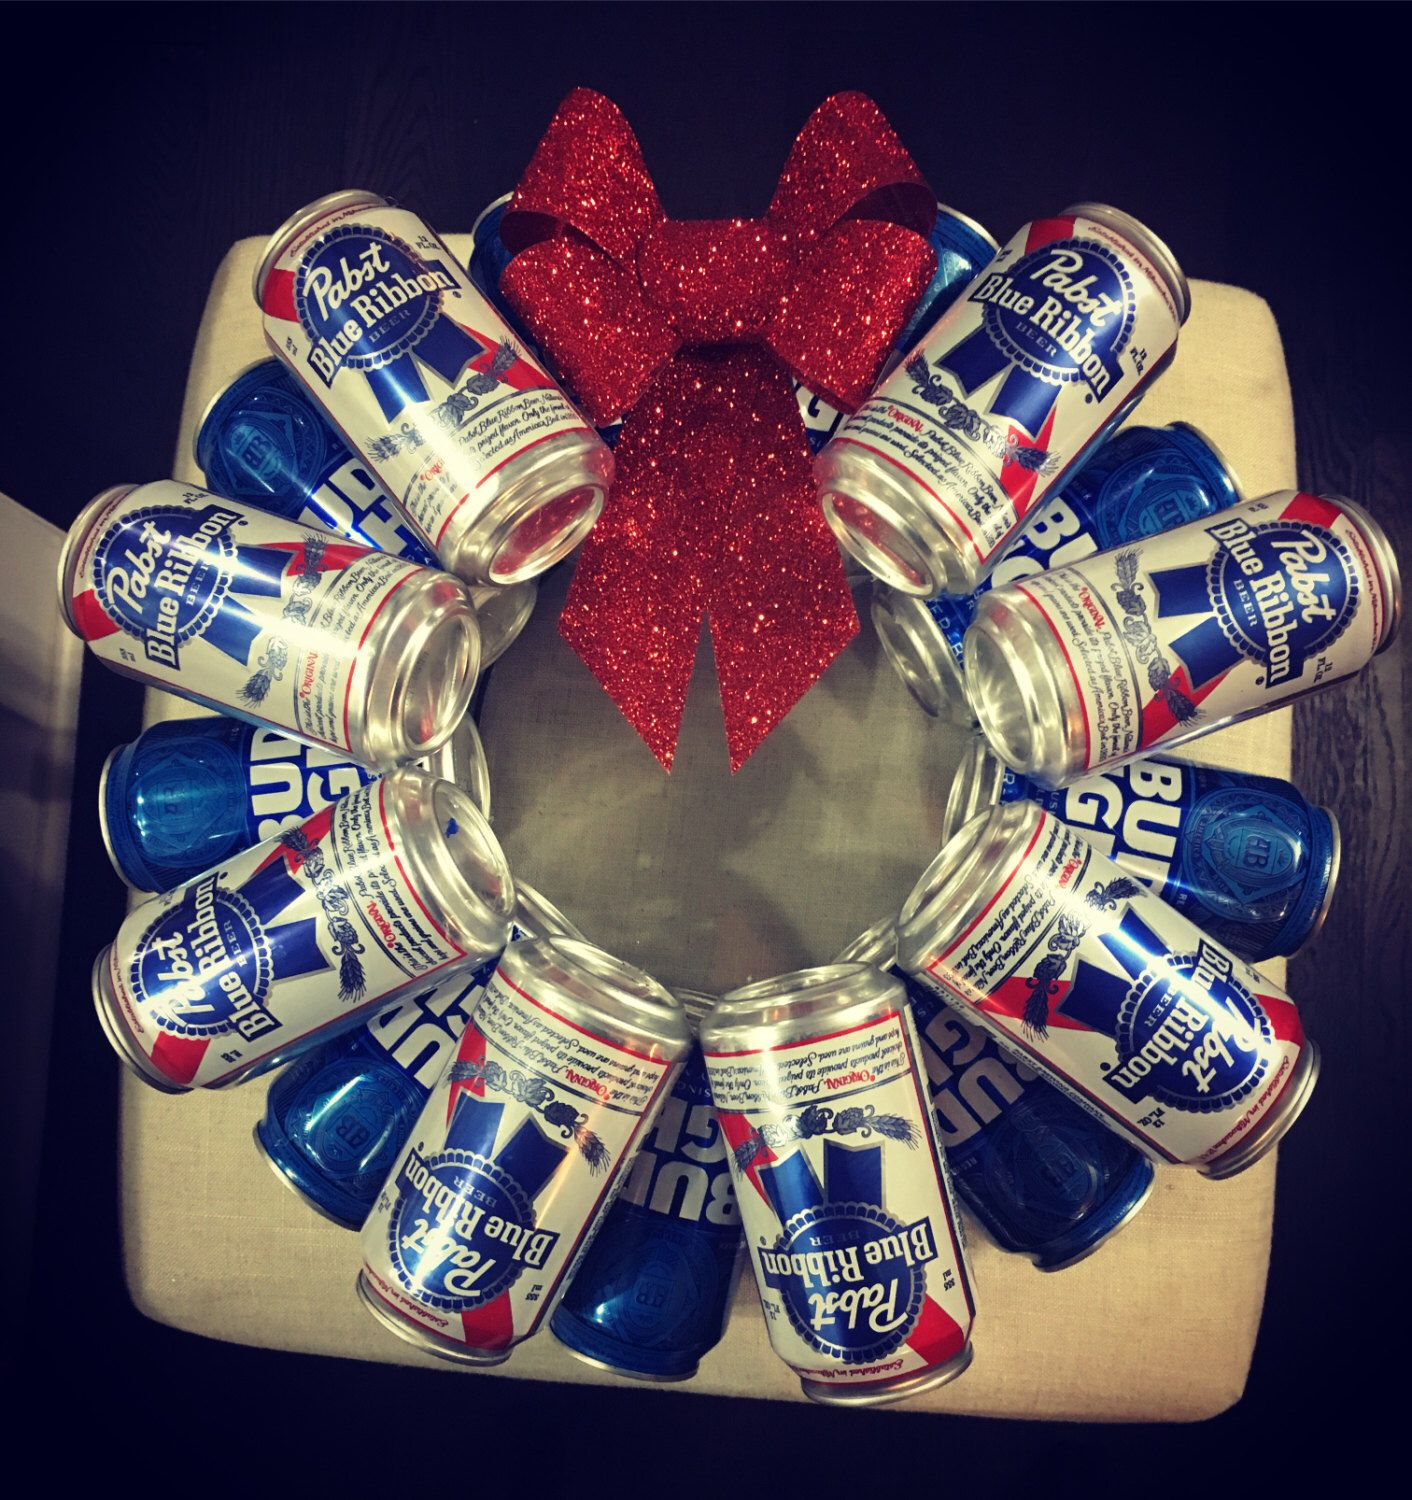 #diy #wreath #beer #rrr #homemade #etsy   A personal favorite from my Etsy shop https://www.etsy.com/listing/495760285/beer-can-wreath